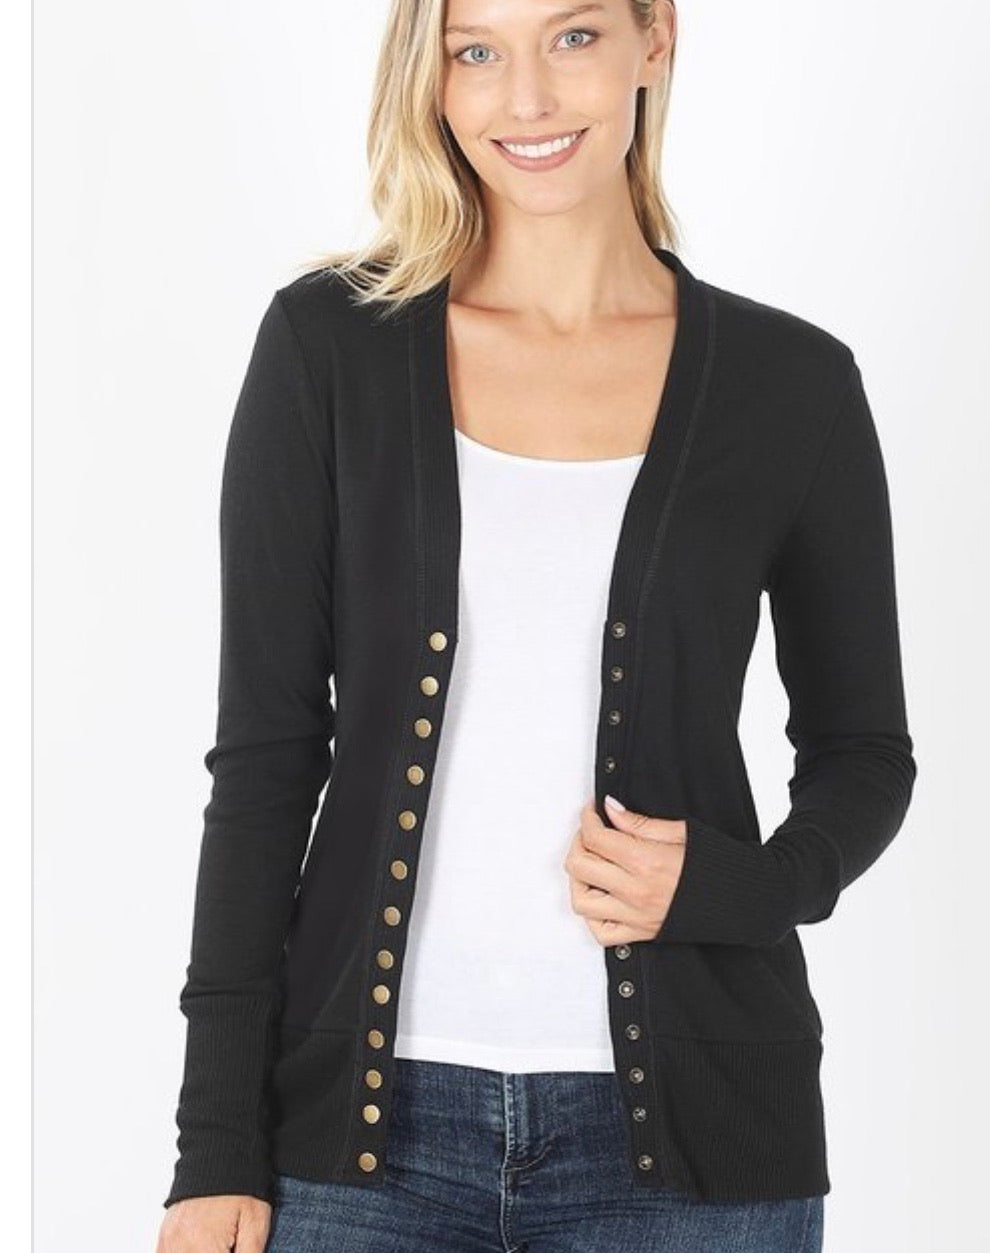 Top Notch Cardigan Black